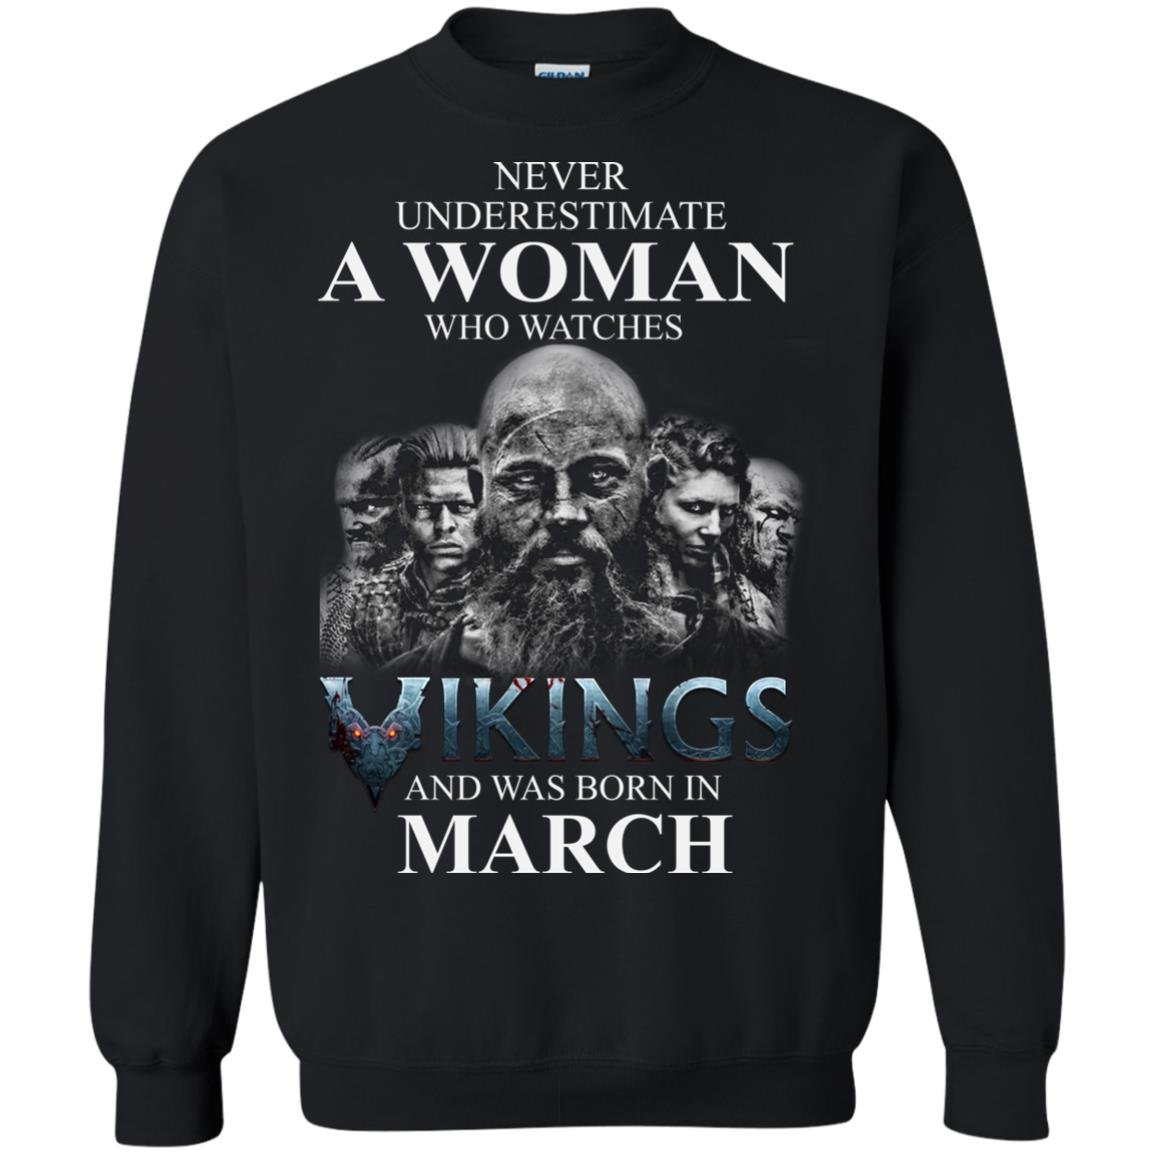 image 1333 - Never Underestimate A woman who watches Vikings and was born in March shirt